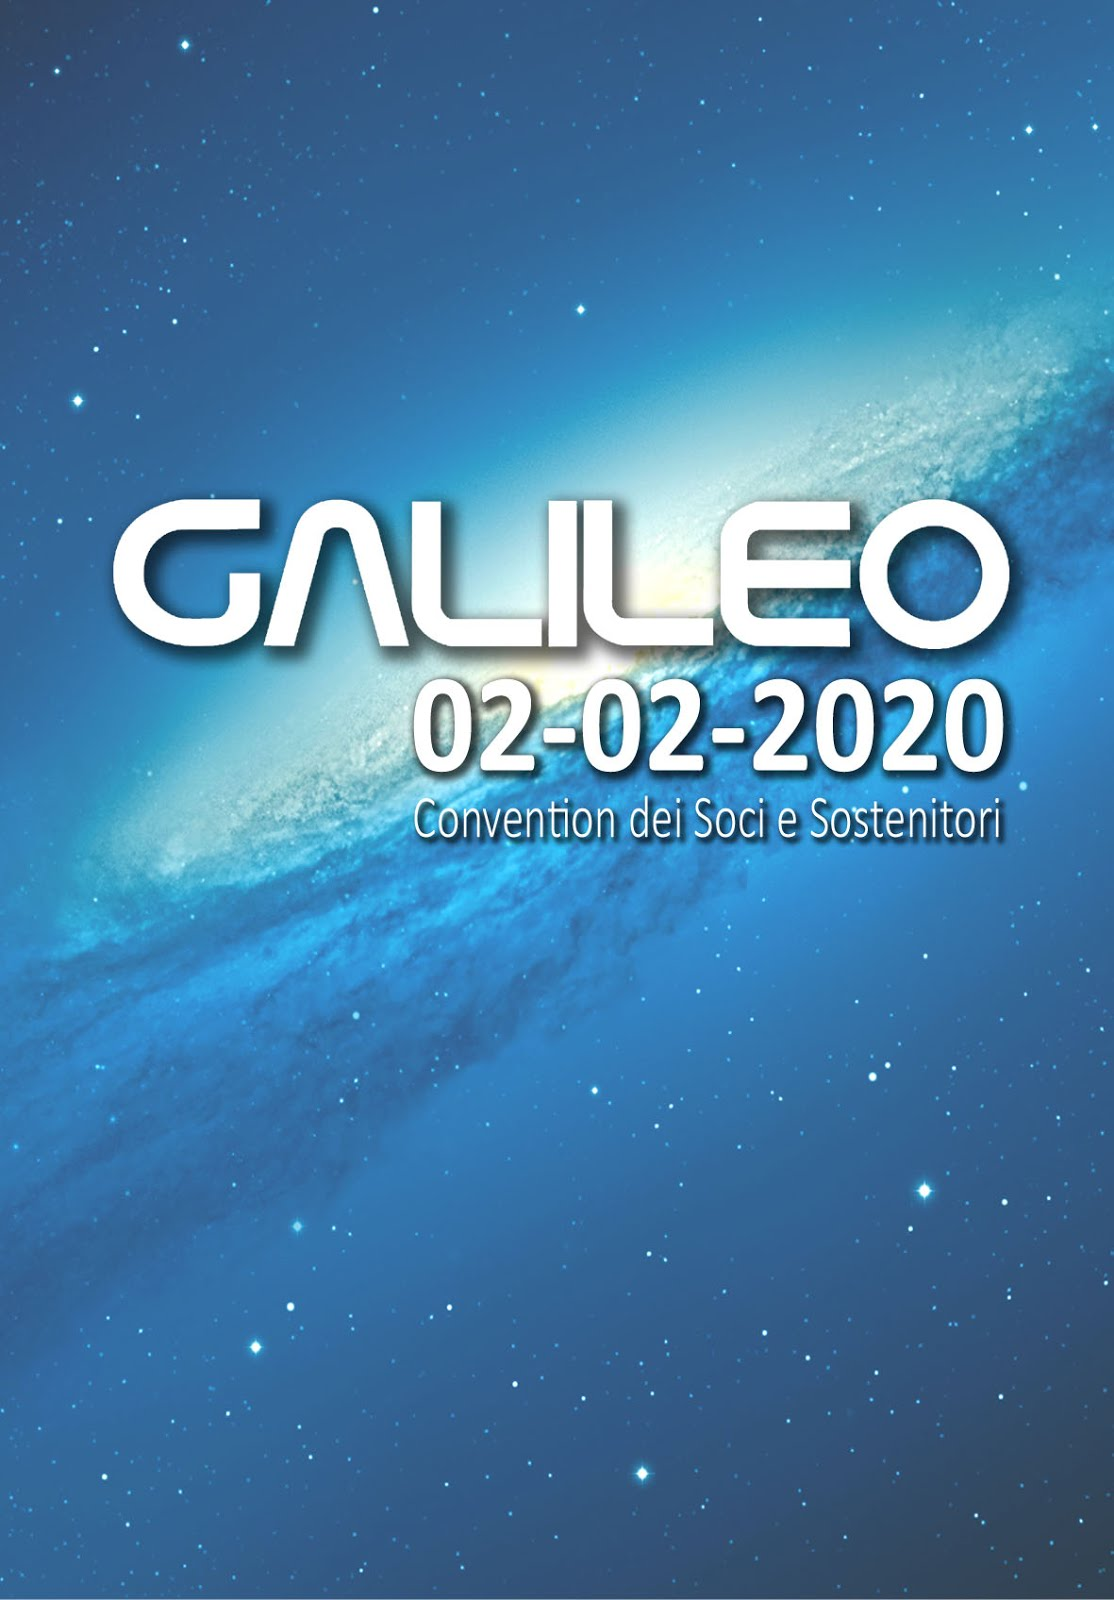 GALILEO CONVENTION 2020